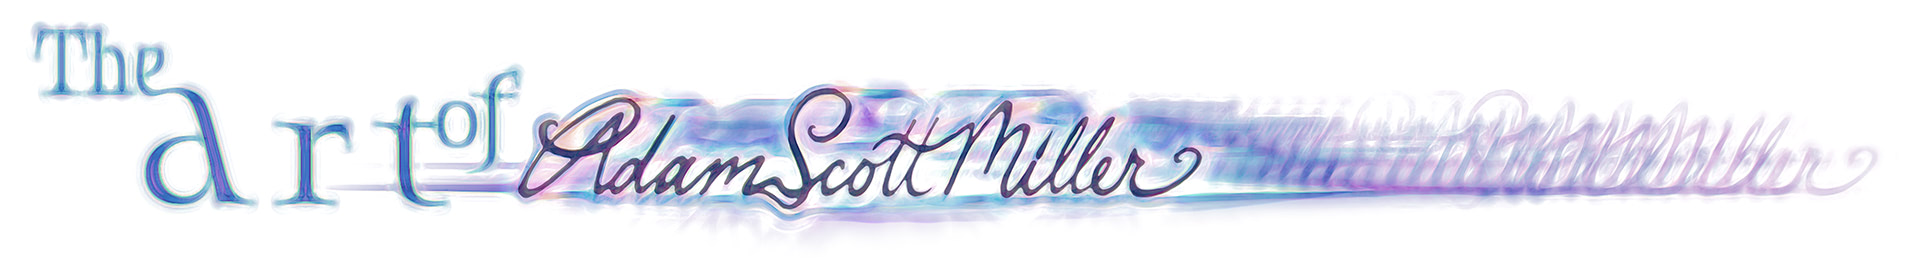 The Art of Adam Scott Miller